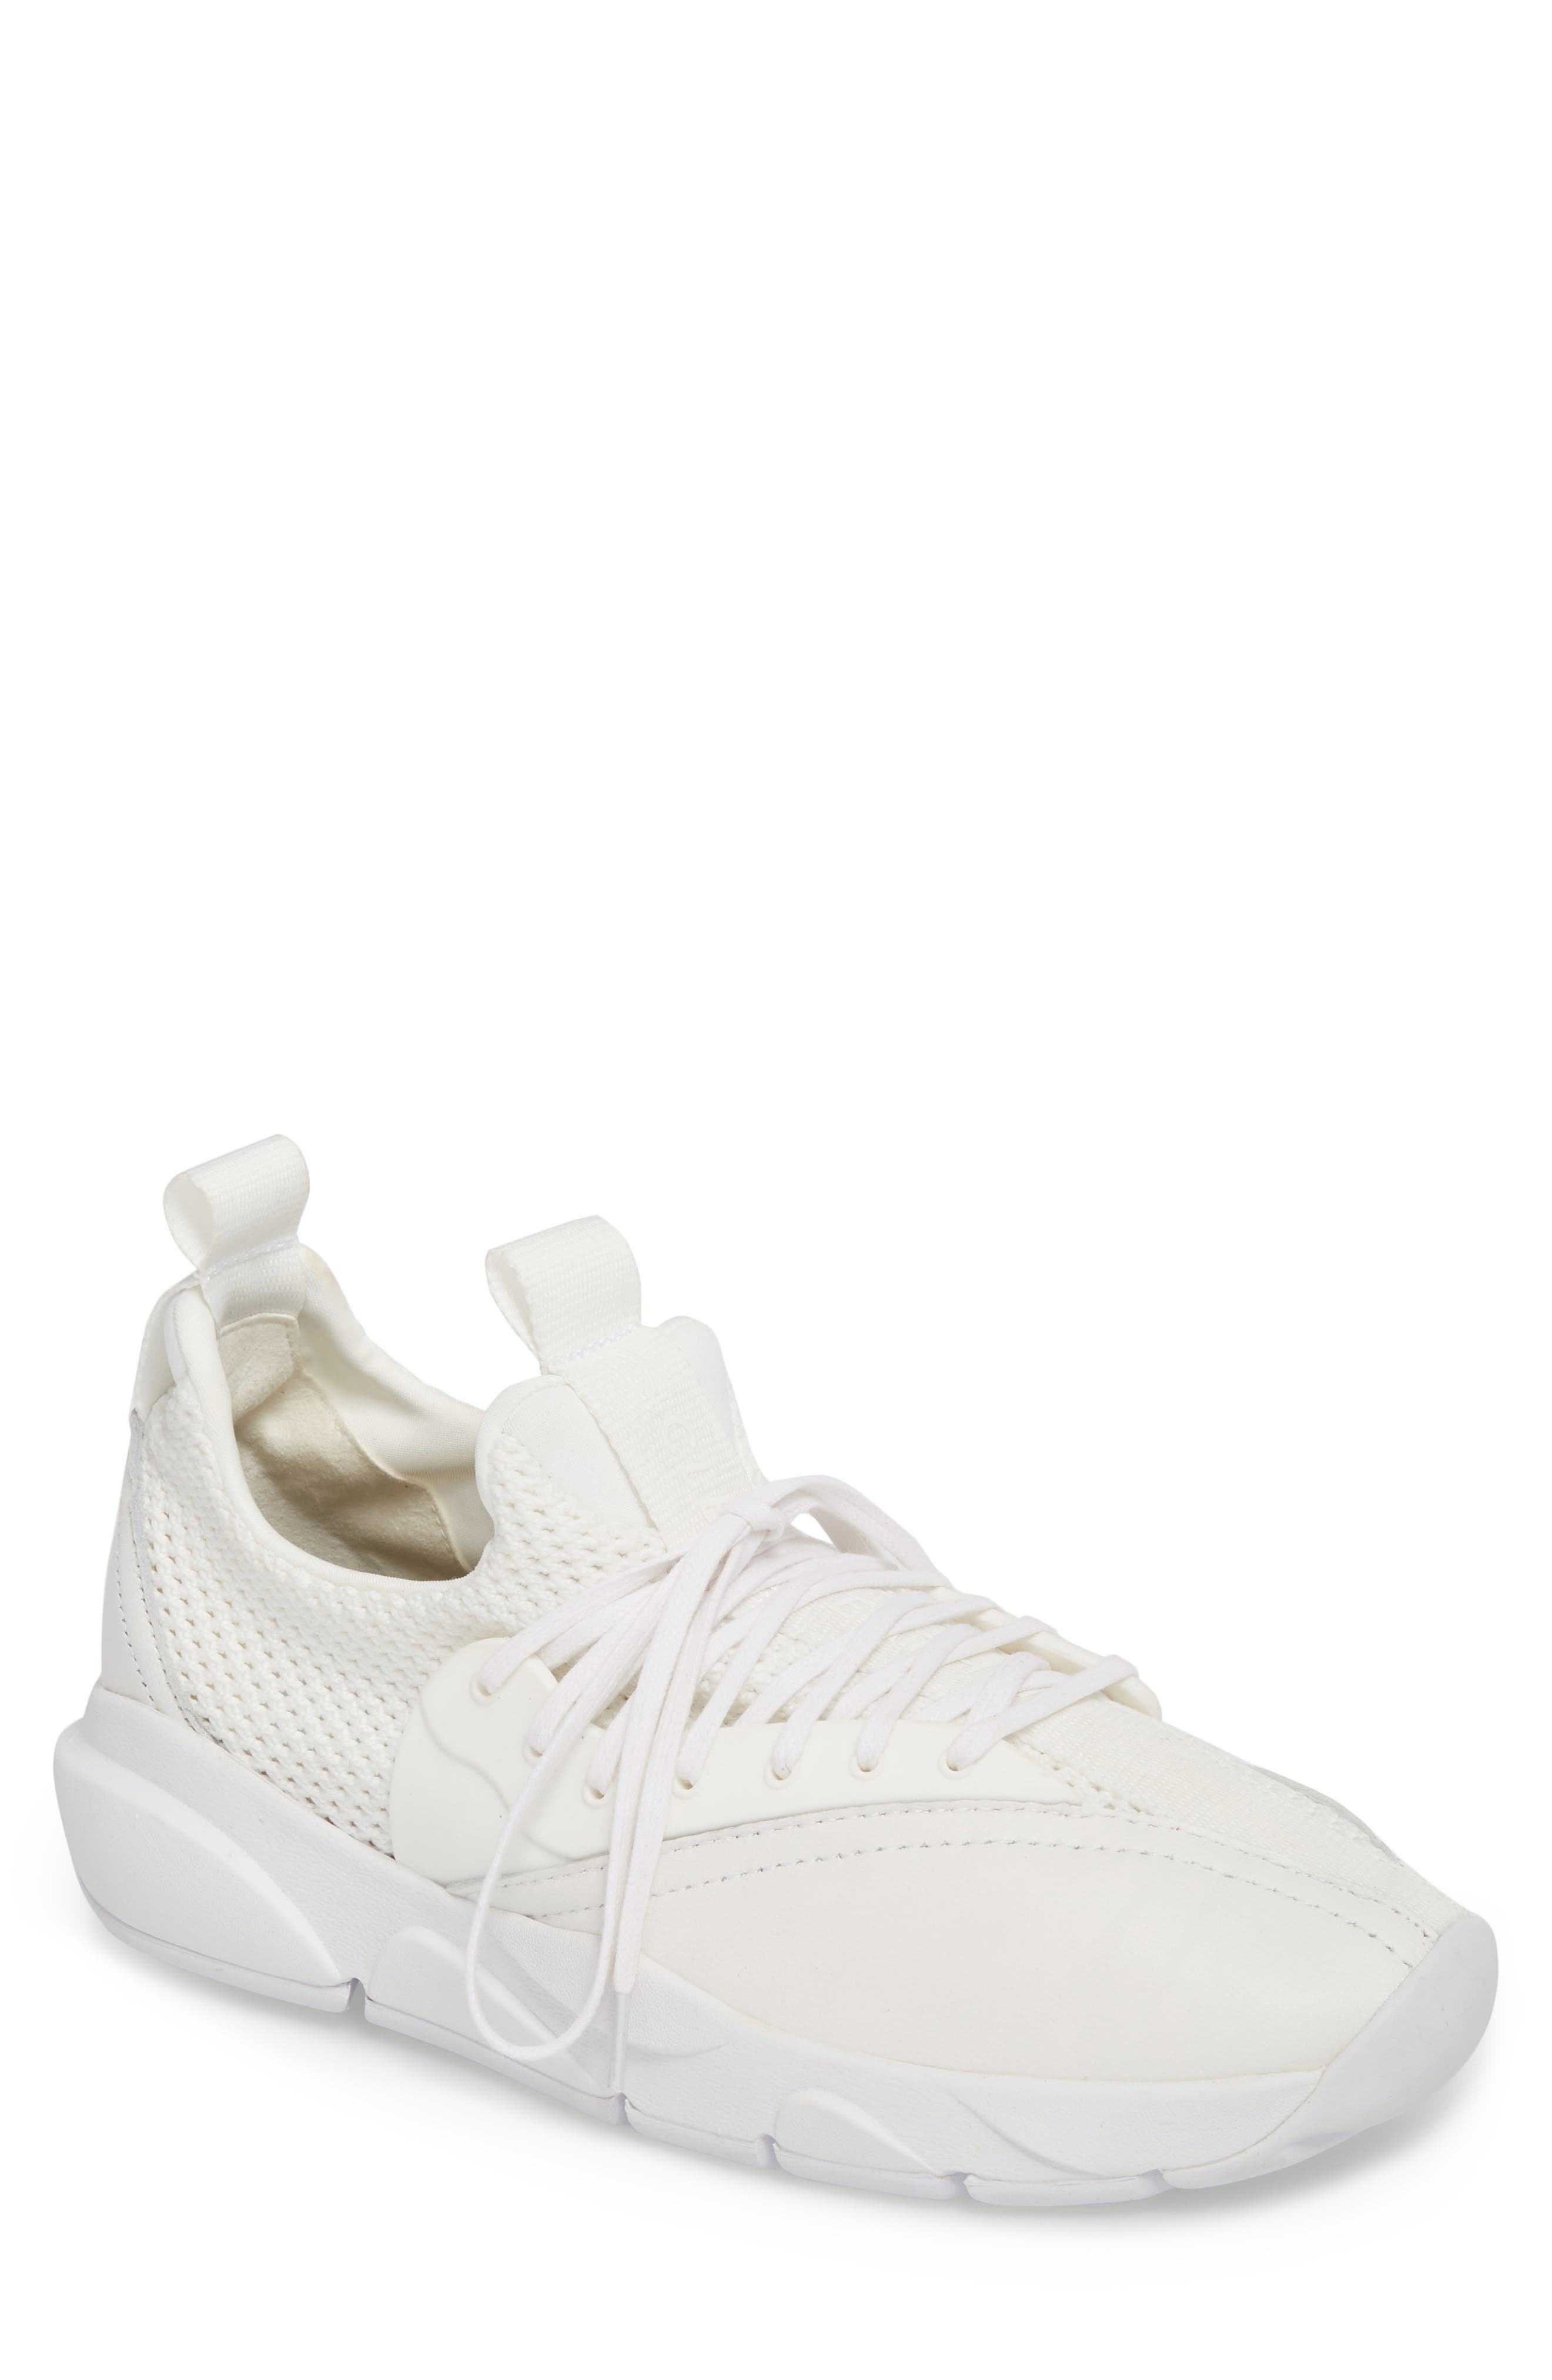 Clear Weather The Cloud Stryke Sneaker,                             Main thumbnail 1, color,                             White Hawk